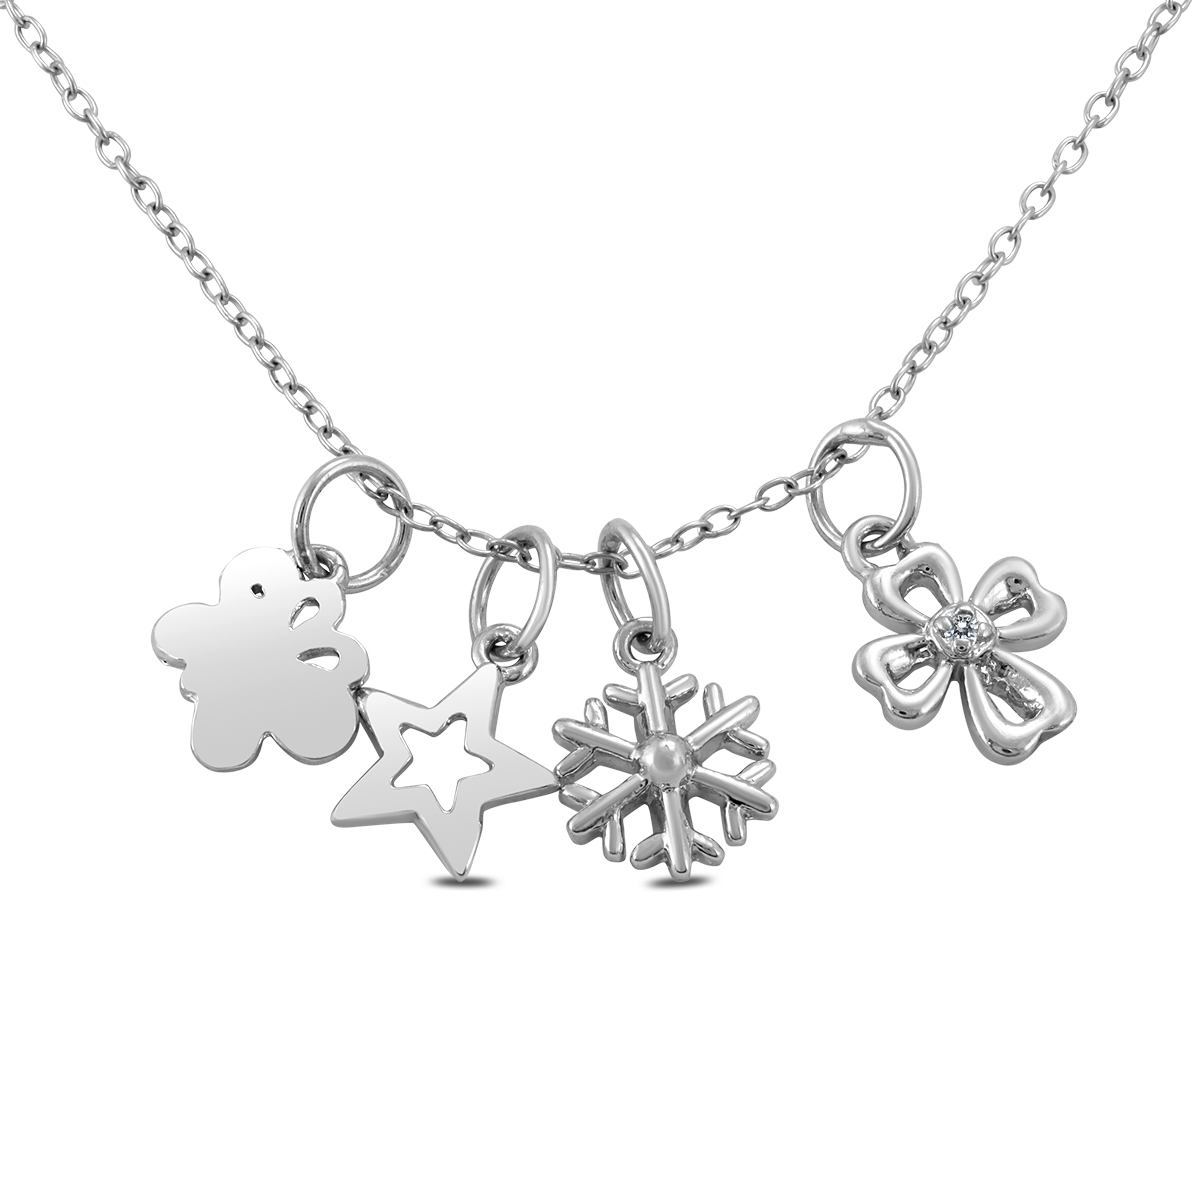 Diampond Accent Charm Necklace in .925 Sterling